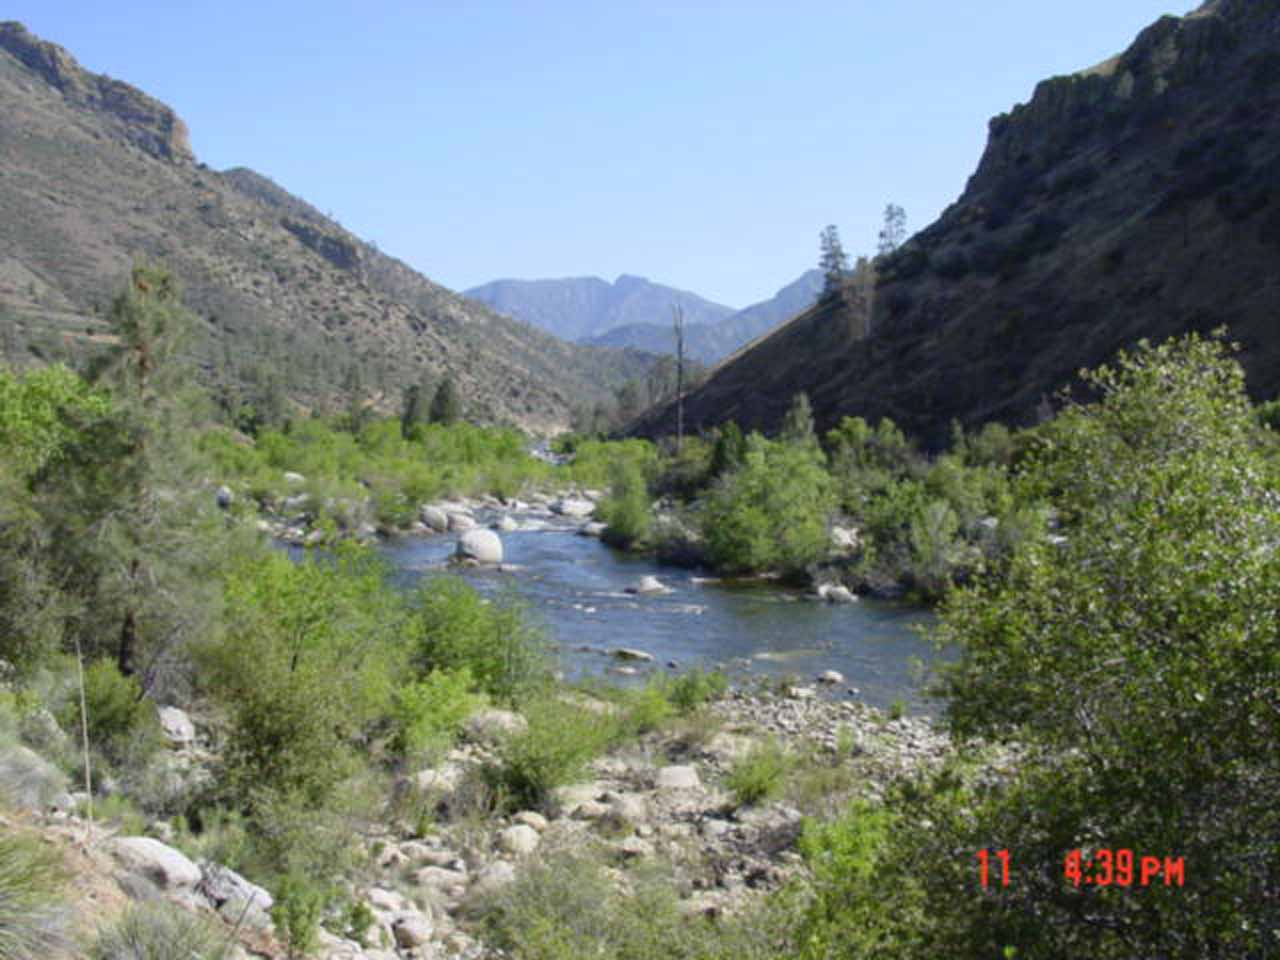 Nearby South Creek Falls was the Kern River, which was very popular for whitewater rafting